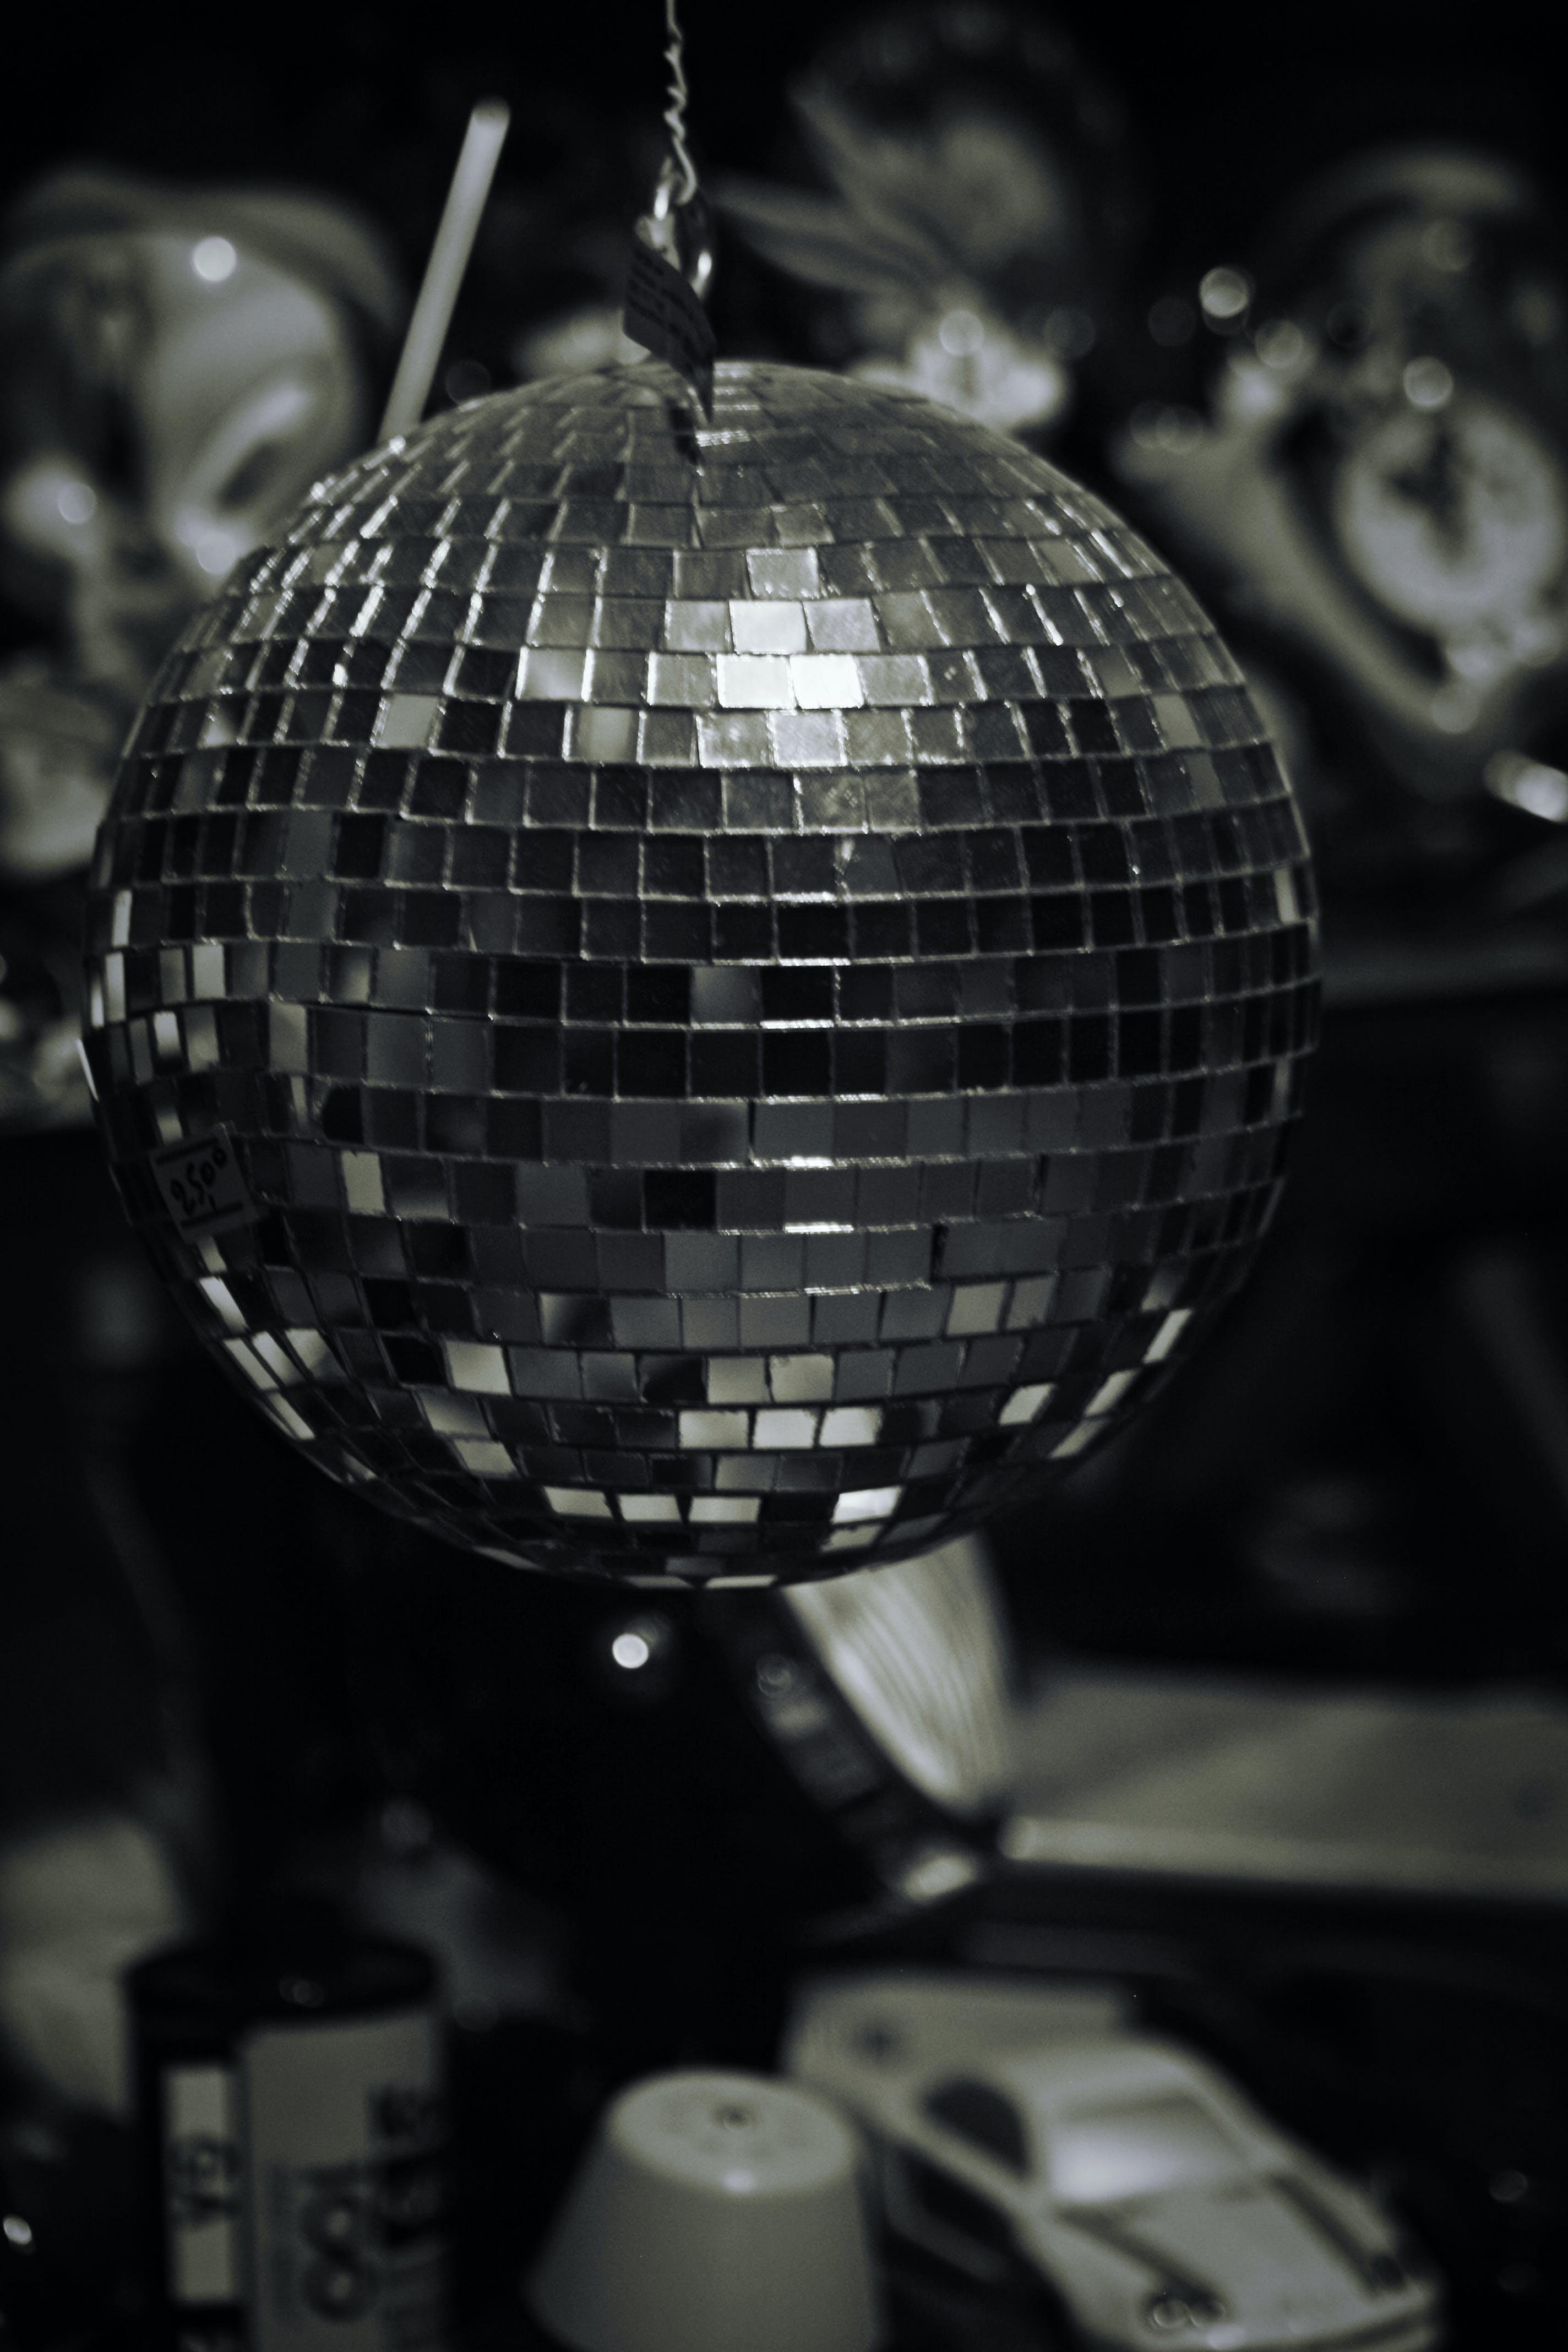 Free stock photo of black and white, car, discoball, documentary